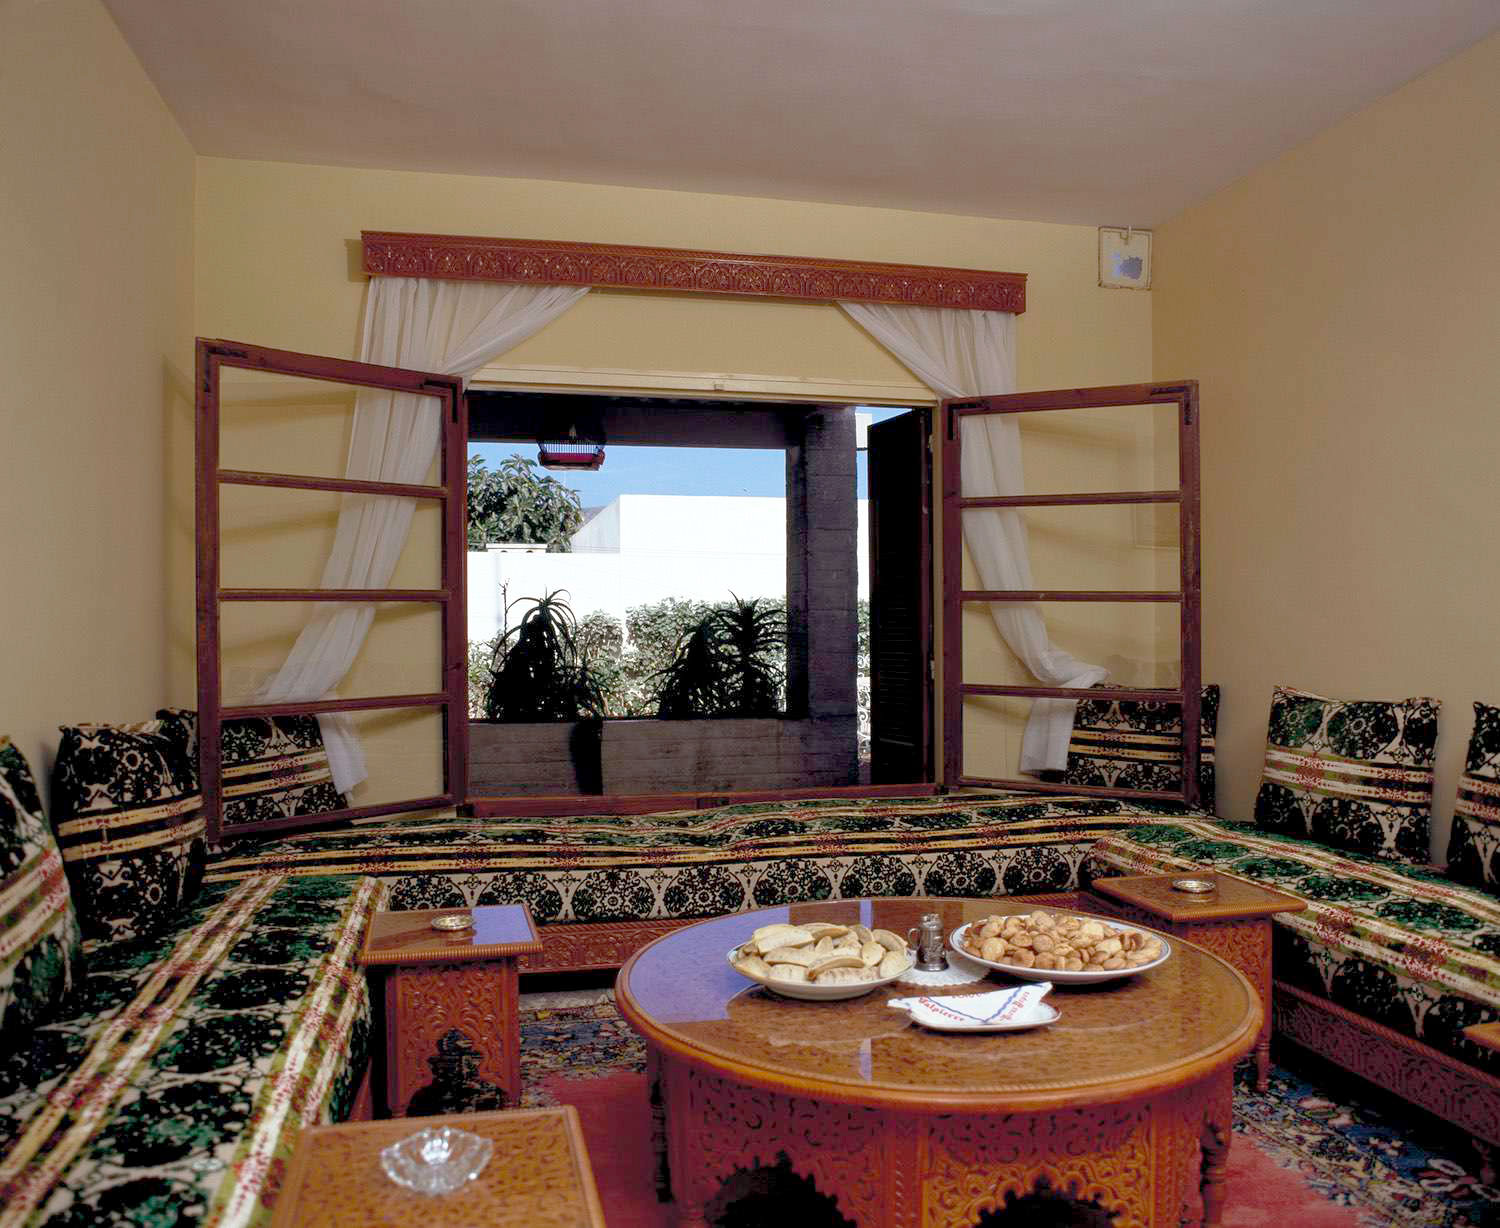 Courtyard Houses Of Agadir The Seating Alcove Is Placed In The Main Room Archnet